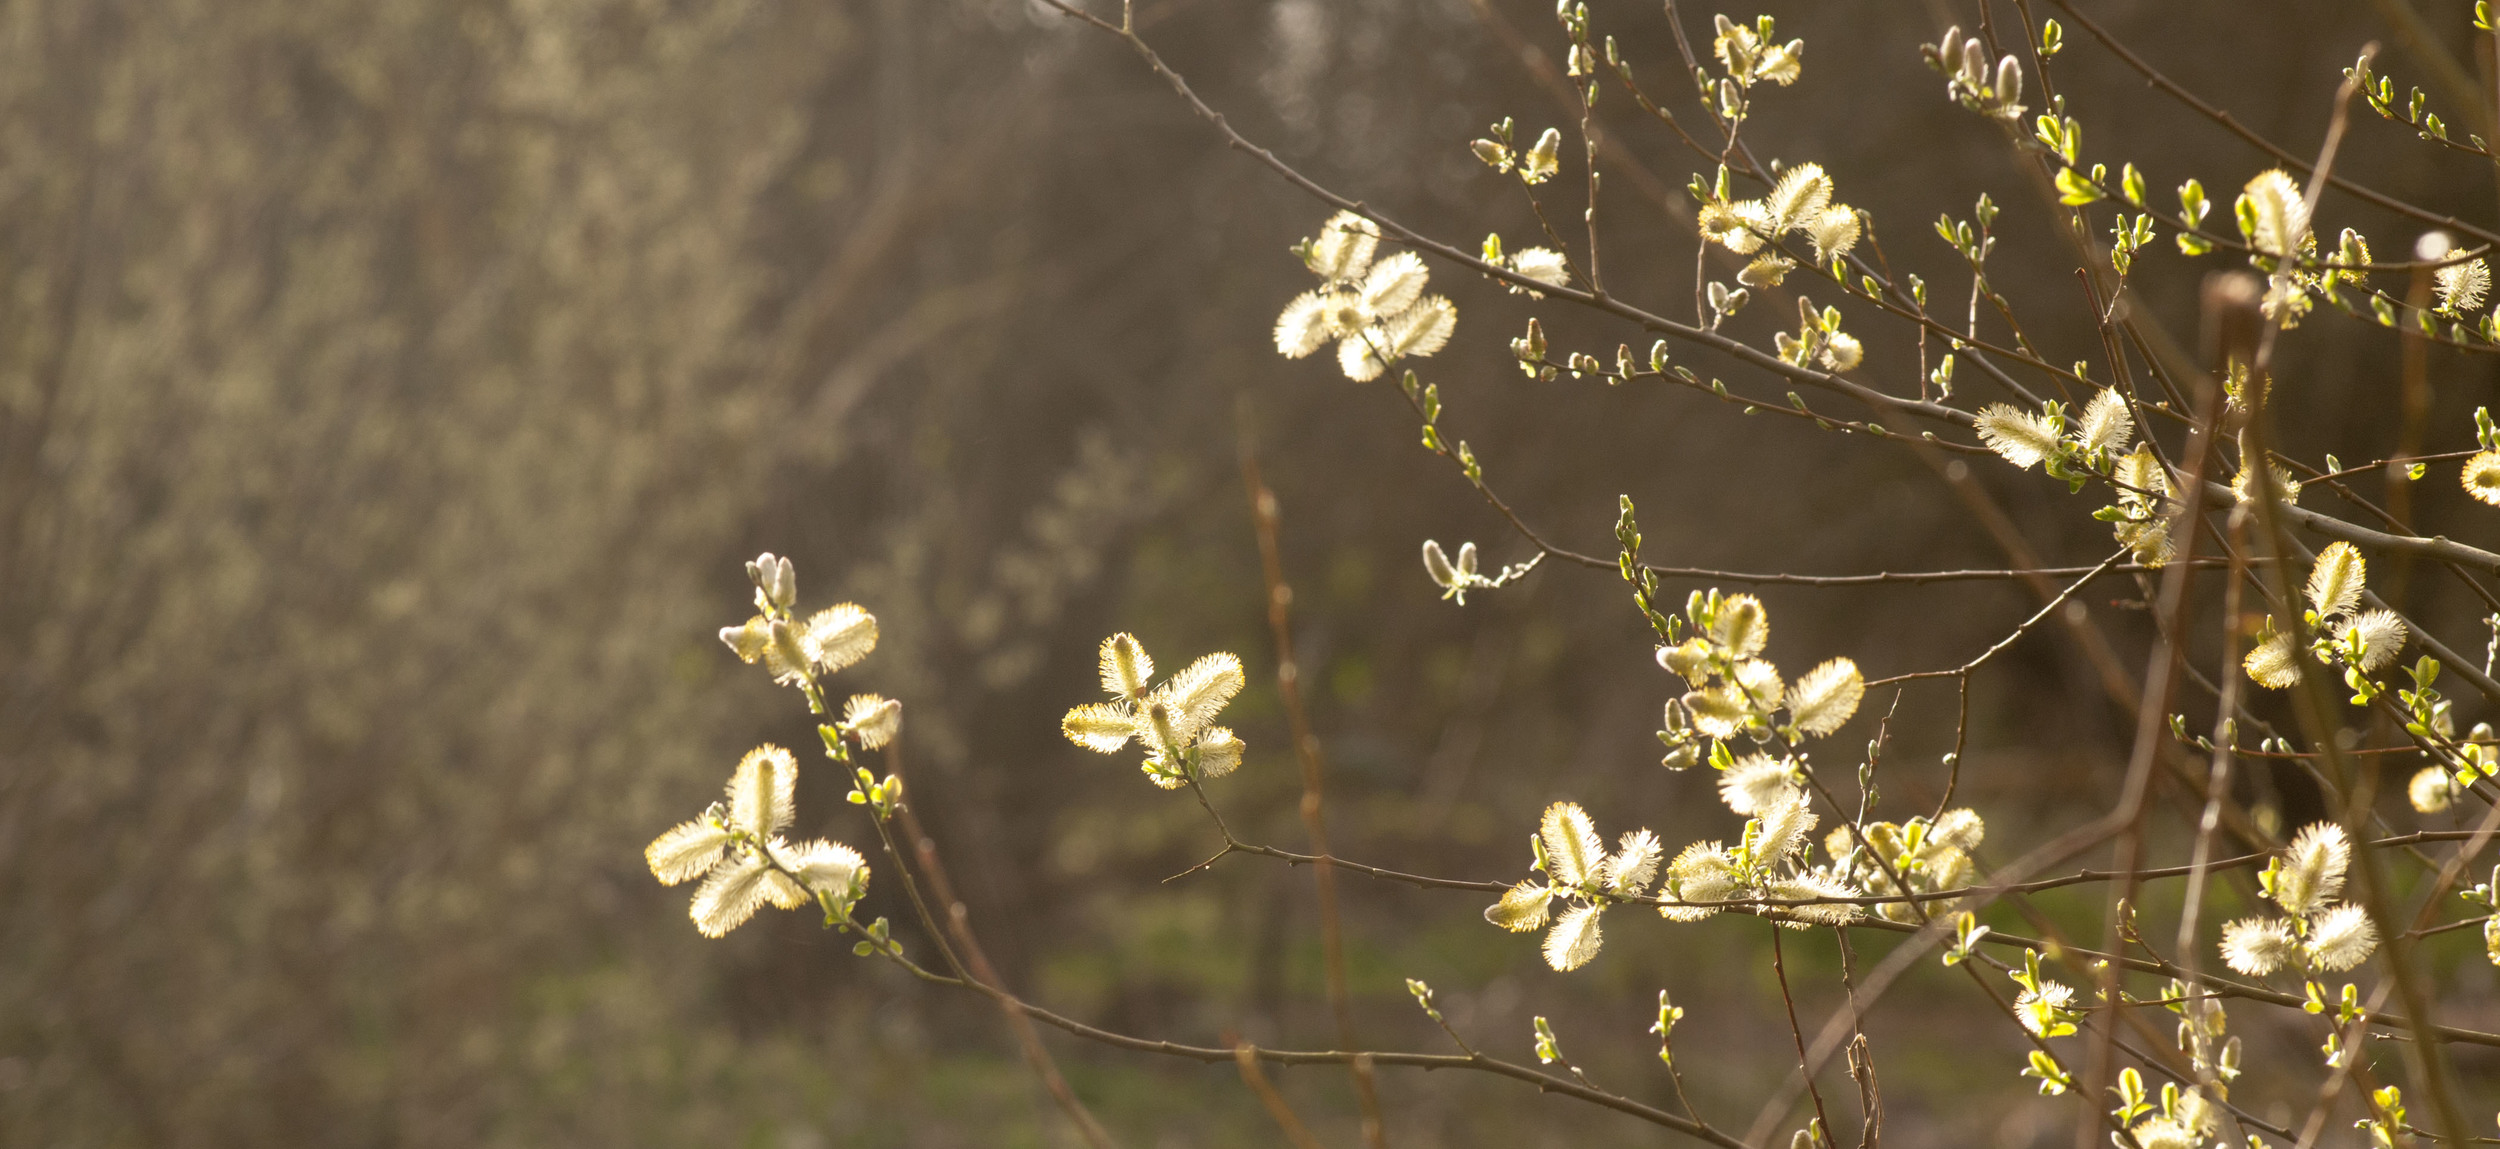 Early spring buds